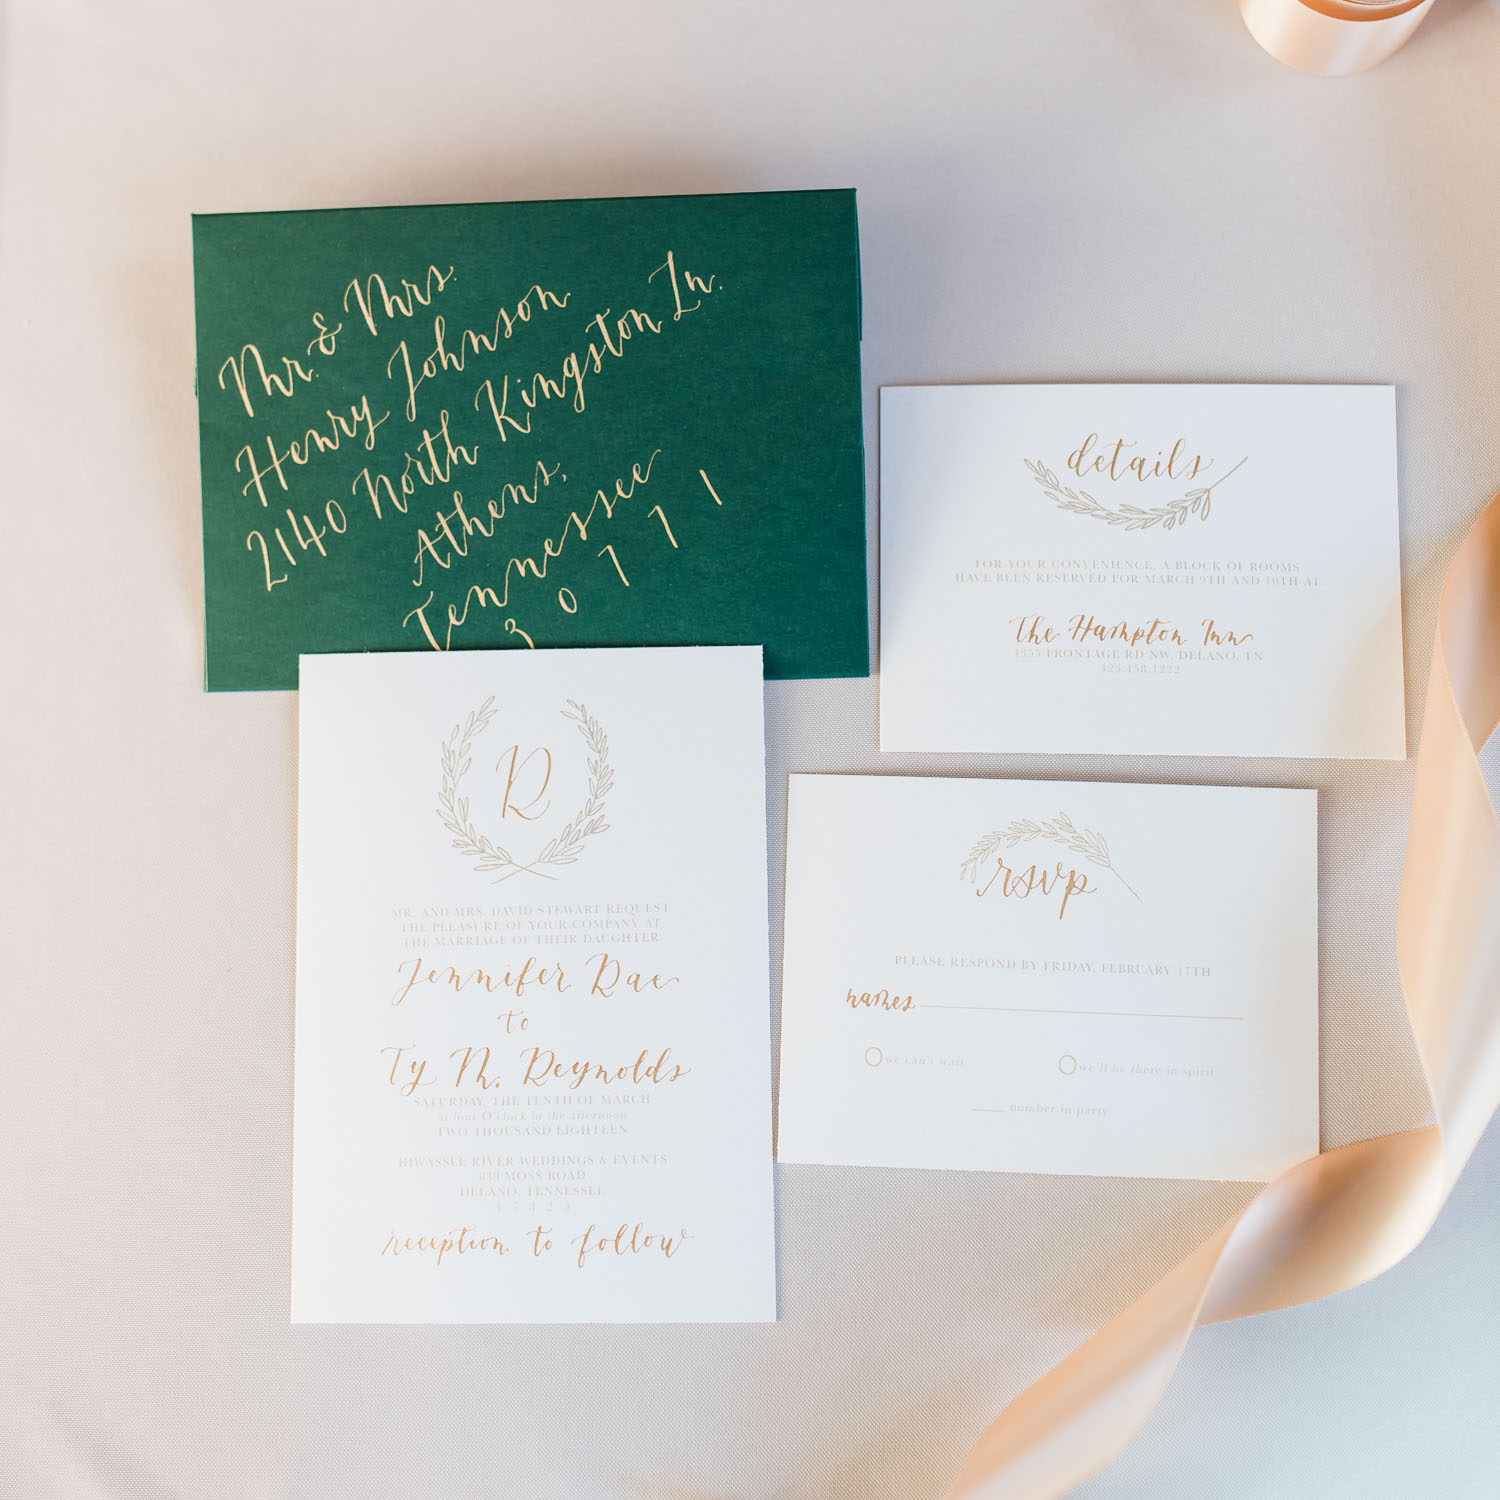 wedding invitation set in white, green and gold calligraphy lettering